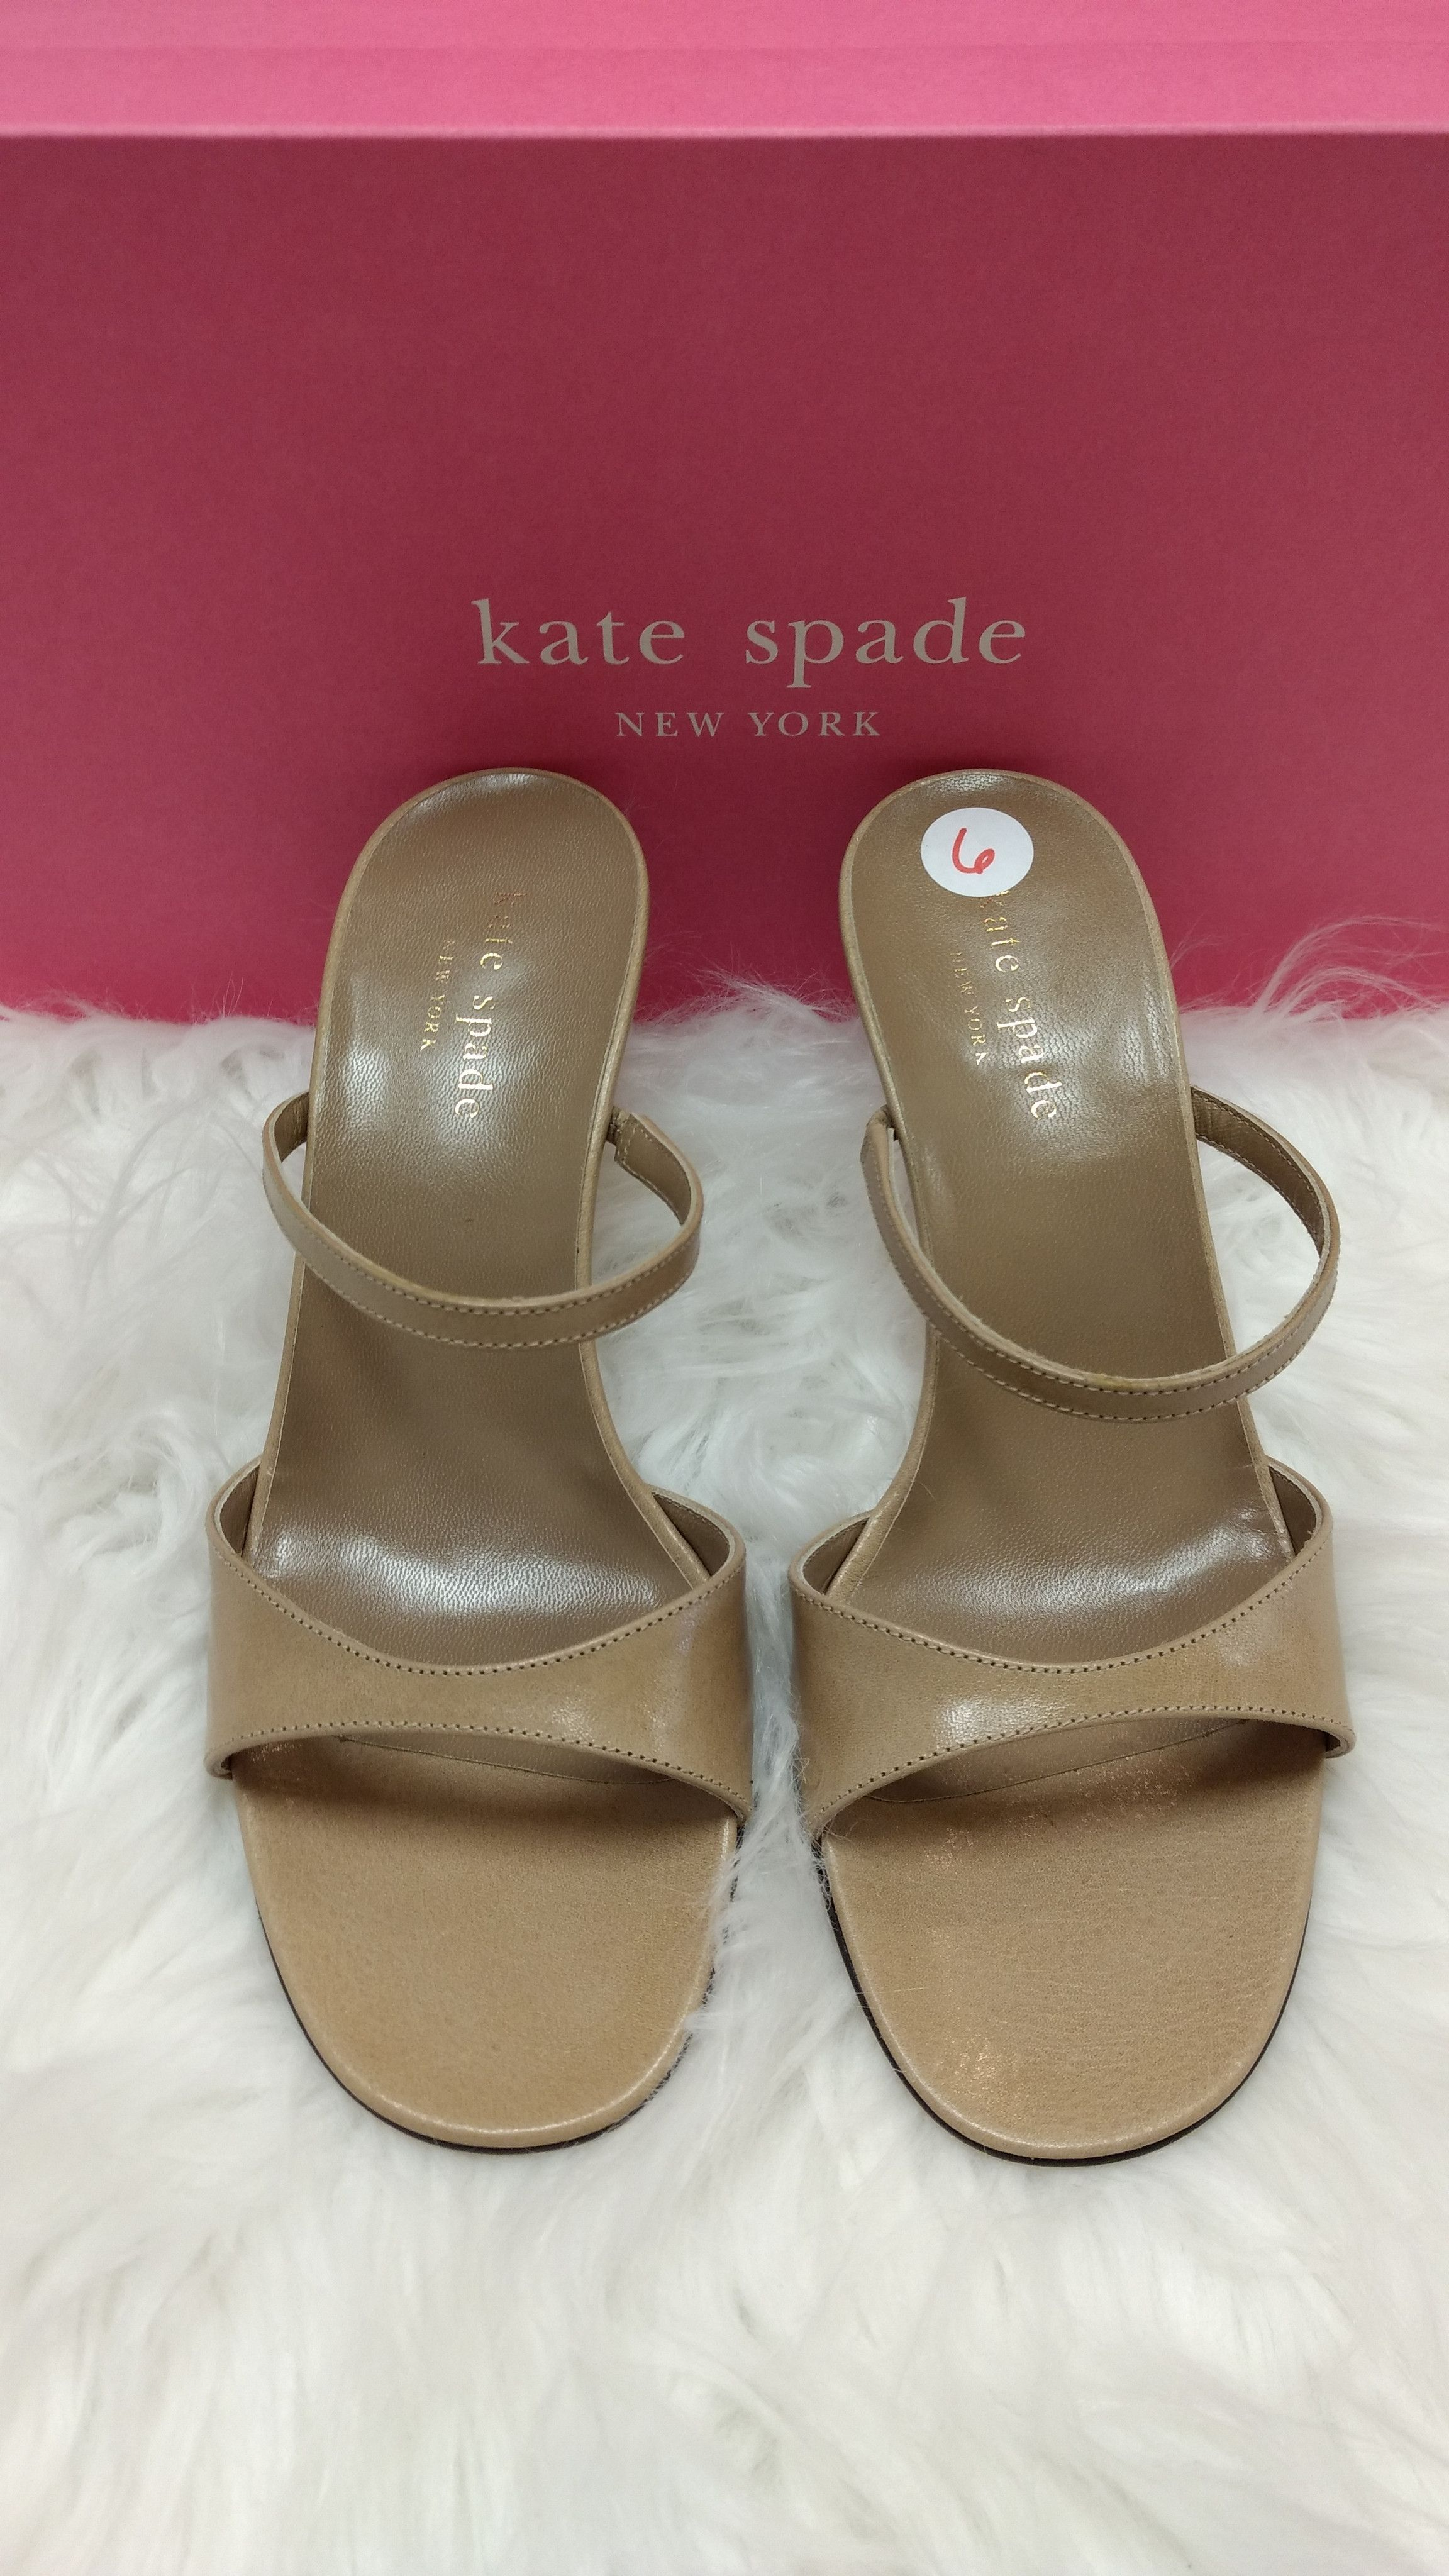 Kate Spade Nude Heels Size 6 | Shoes | Pinterest